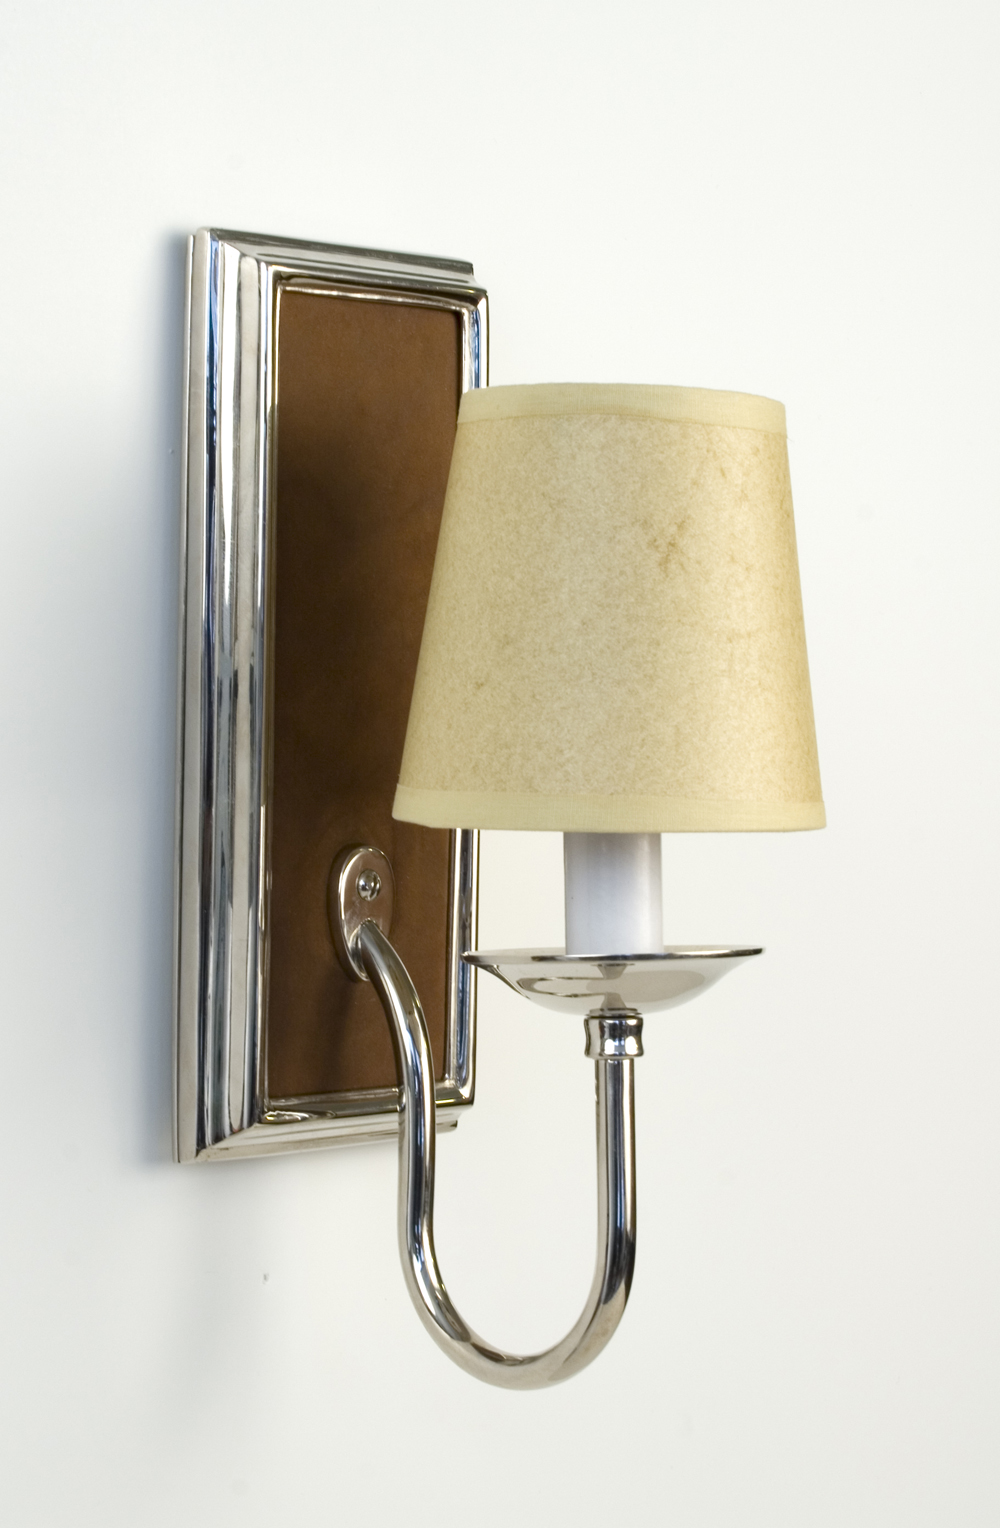 SCDS #03-05-PN-UP-00 Ian wall light.jpg